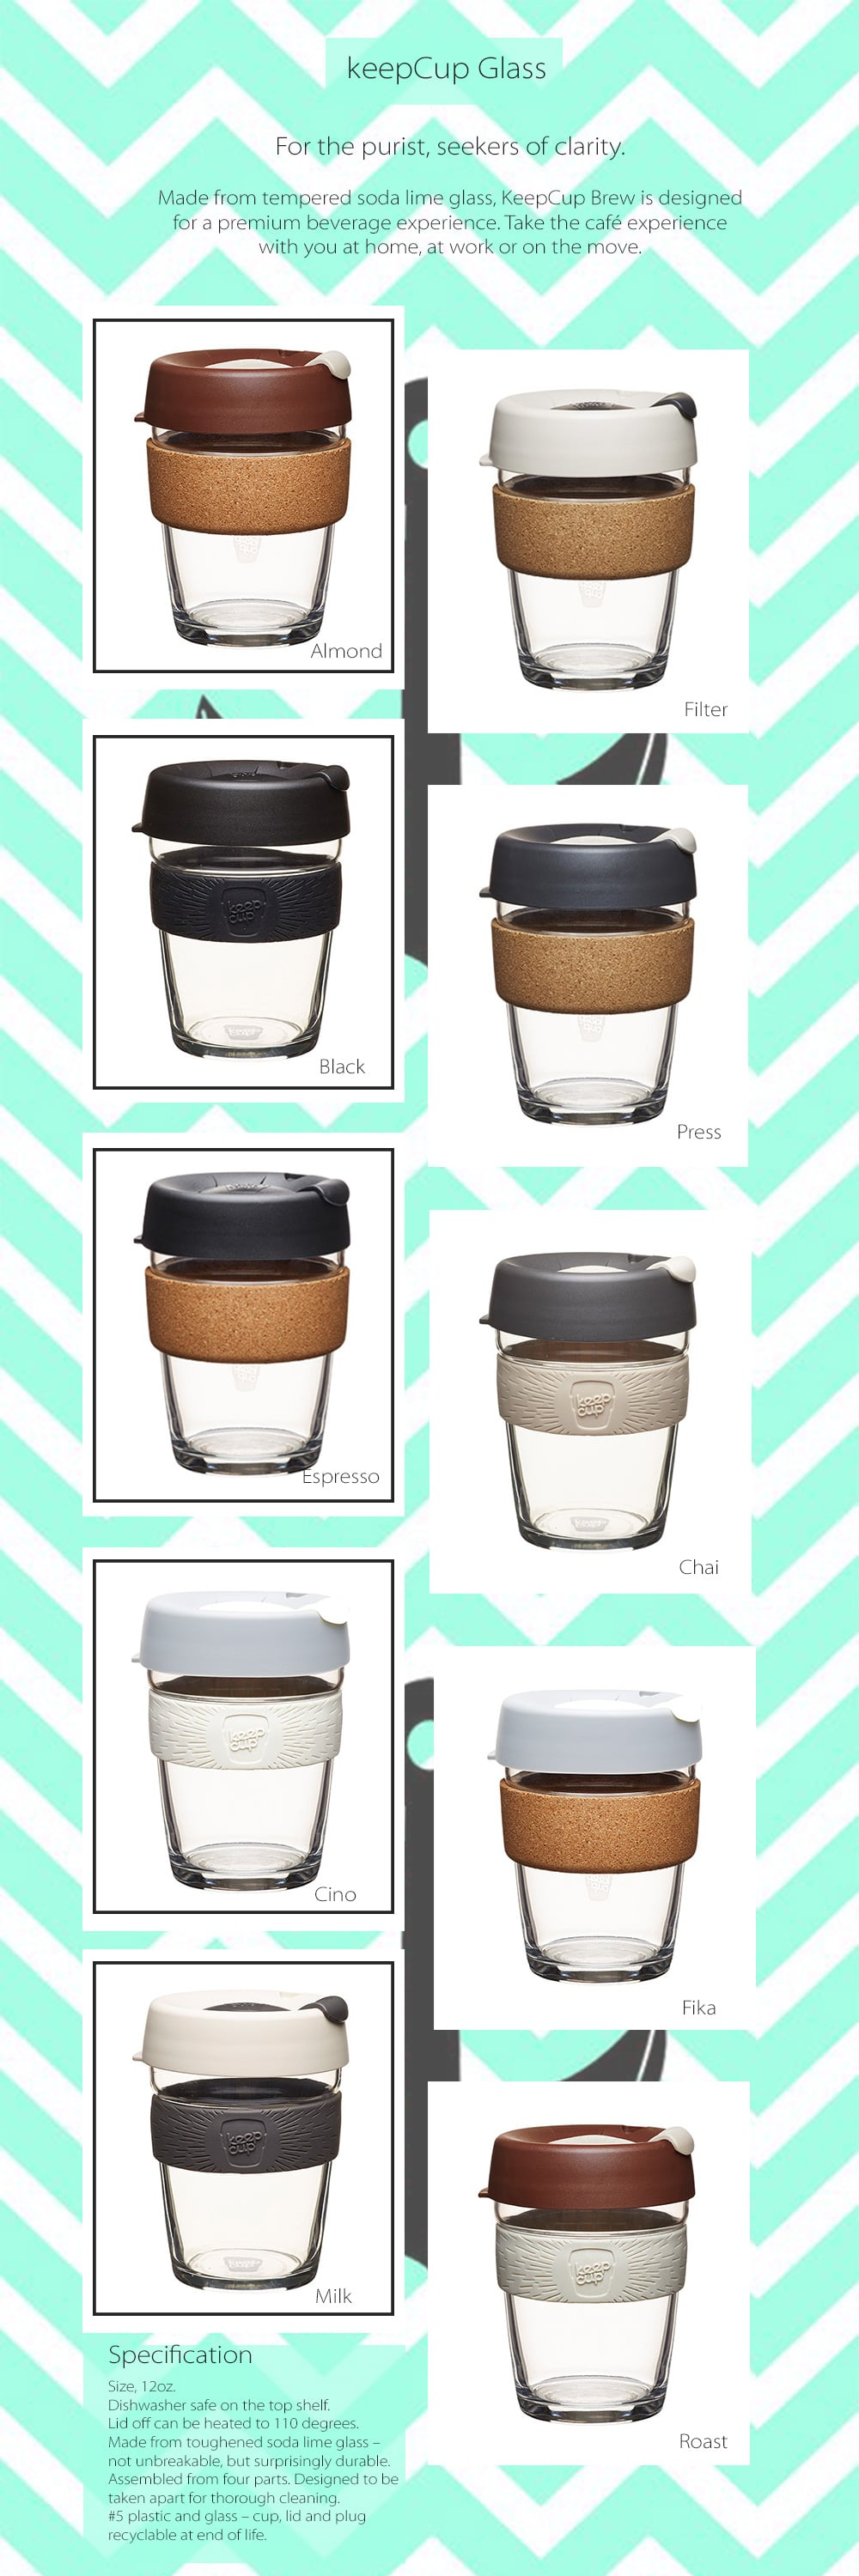 KeepCup Brew For The Purist, Seekers Of Clarity